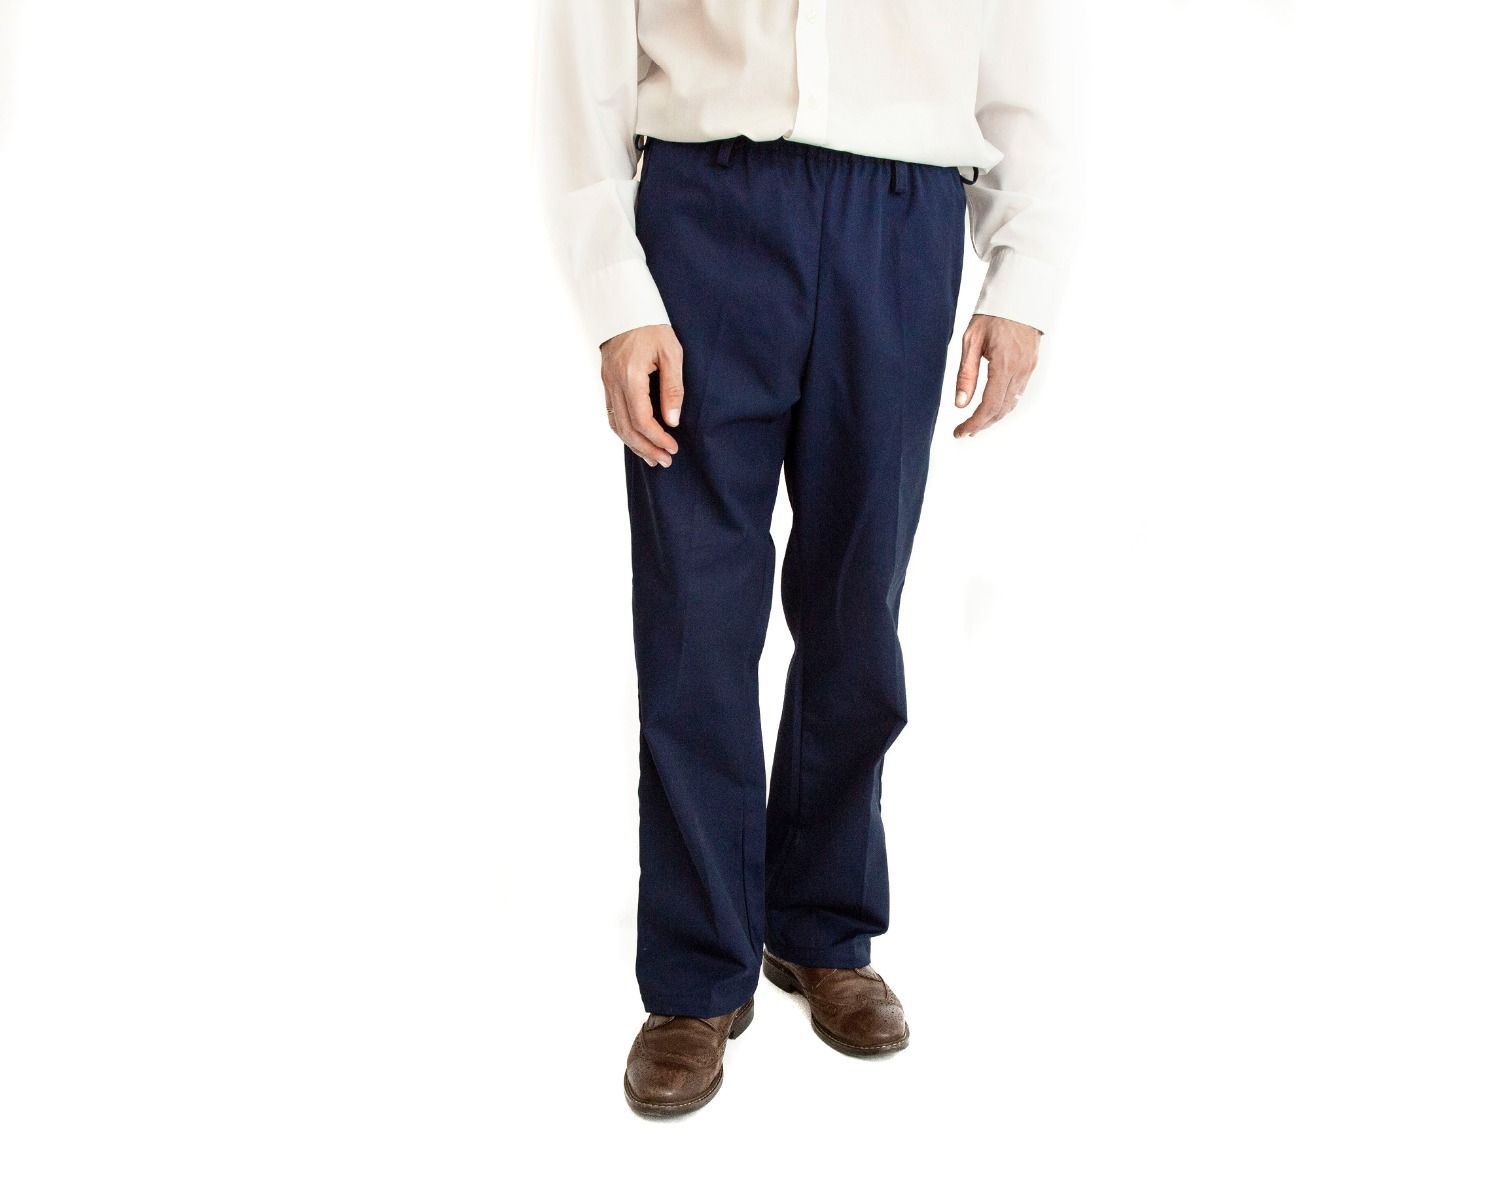 Made To Measure Elasticated Waist Easy Care Chinos 2